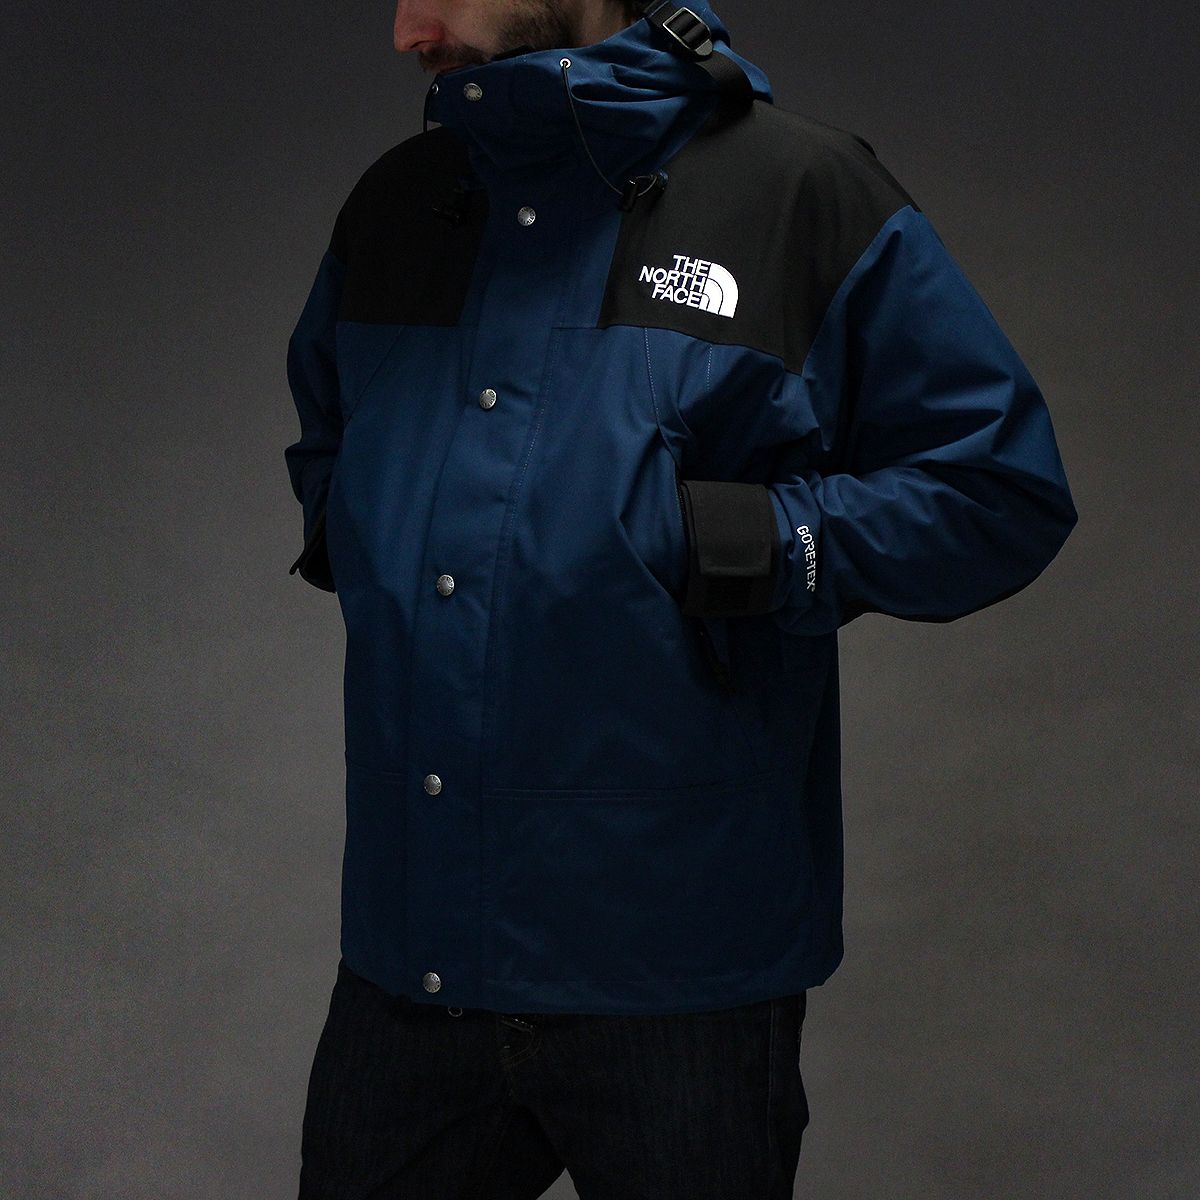 THE NORTH FACE 1990 MOUNTAIN GTX JACKET BLUE WING TEAL